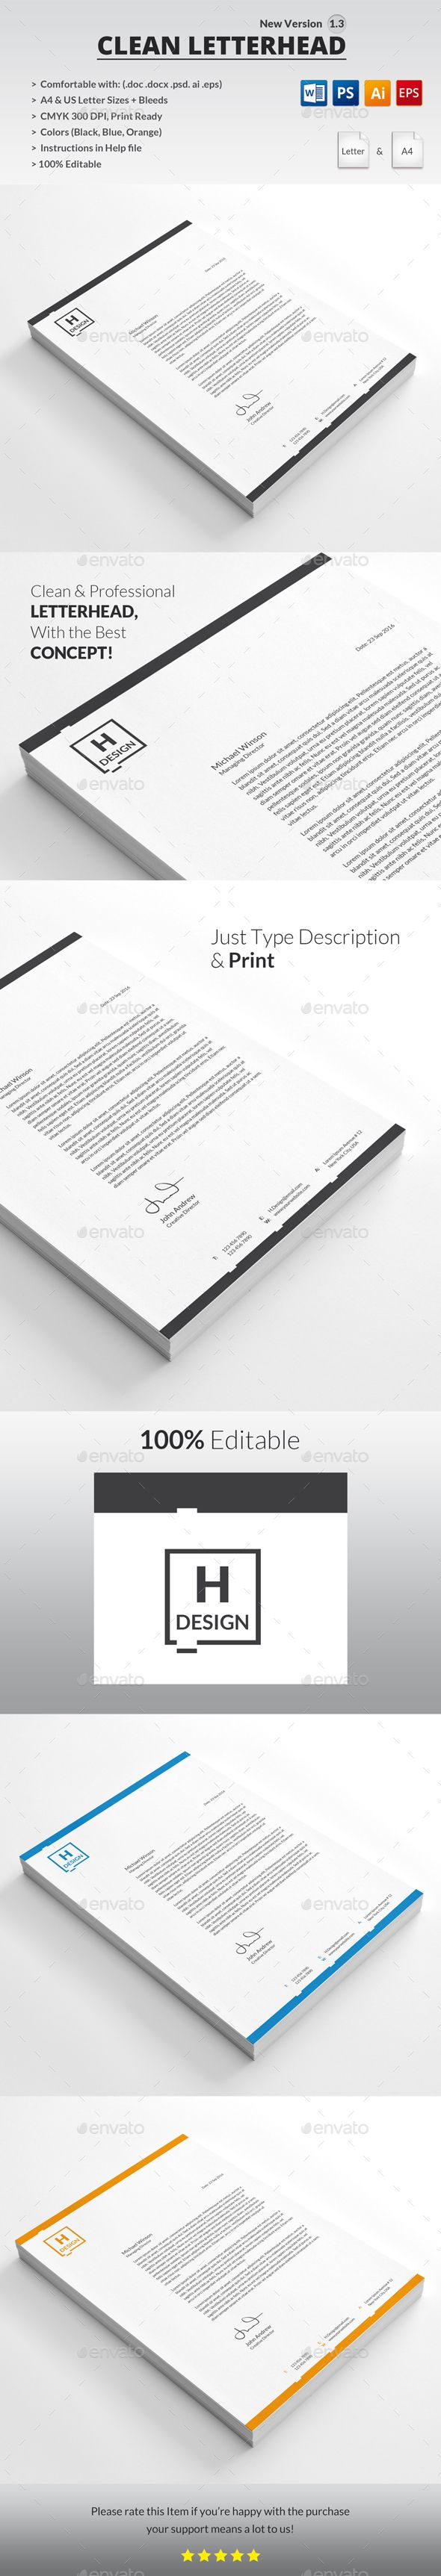 Letterhead PSD Template Word Psd O Download Graphicriver Item 15394954refpxcr